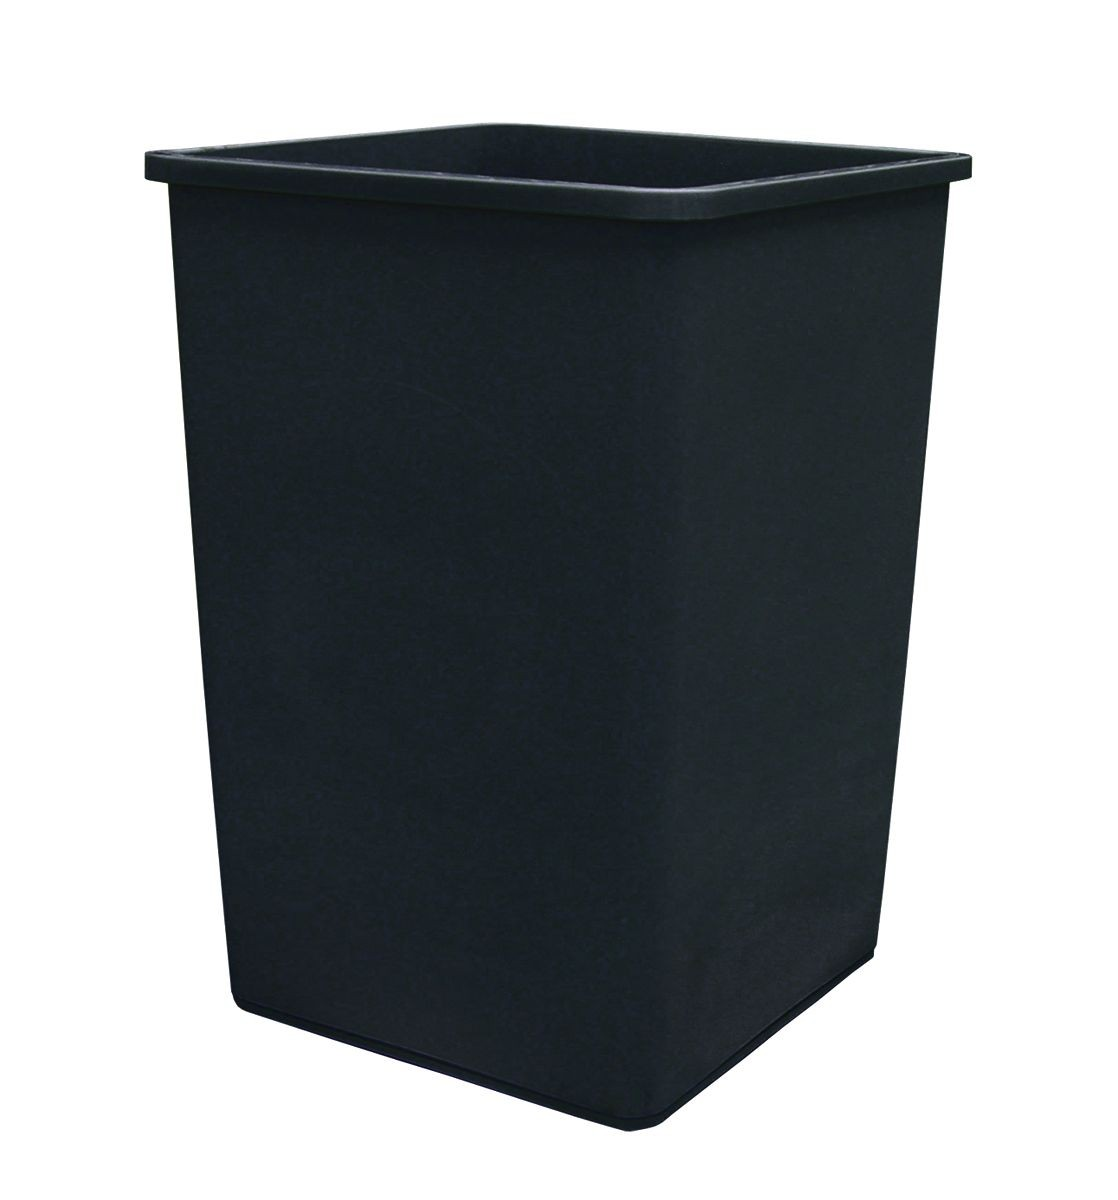 Update International TCSQ-35B Black Square 35 Gallon Plastic Trash Can